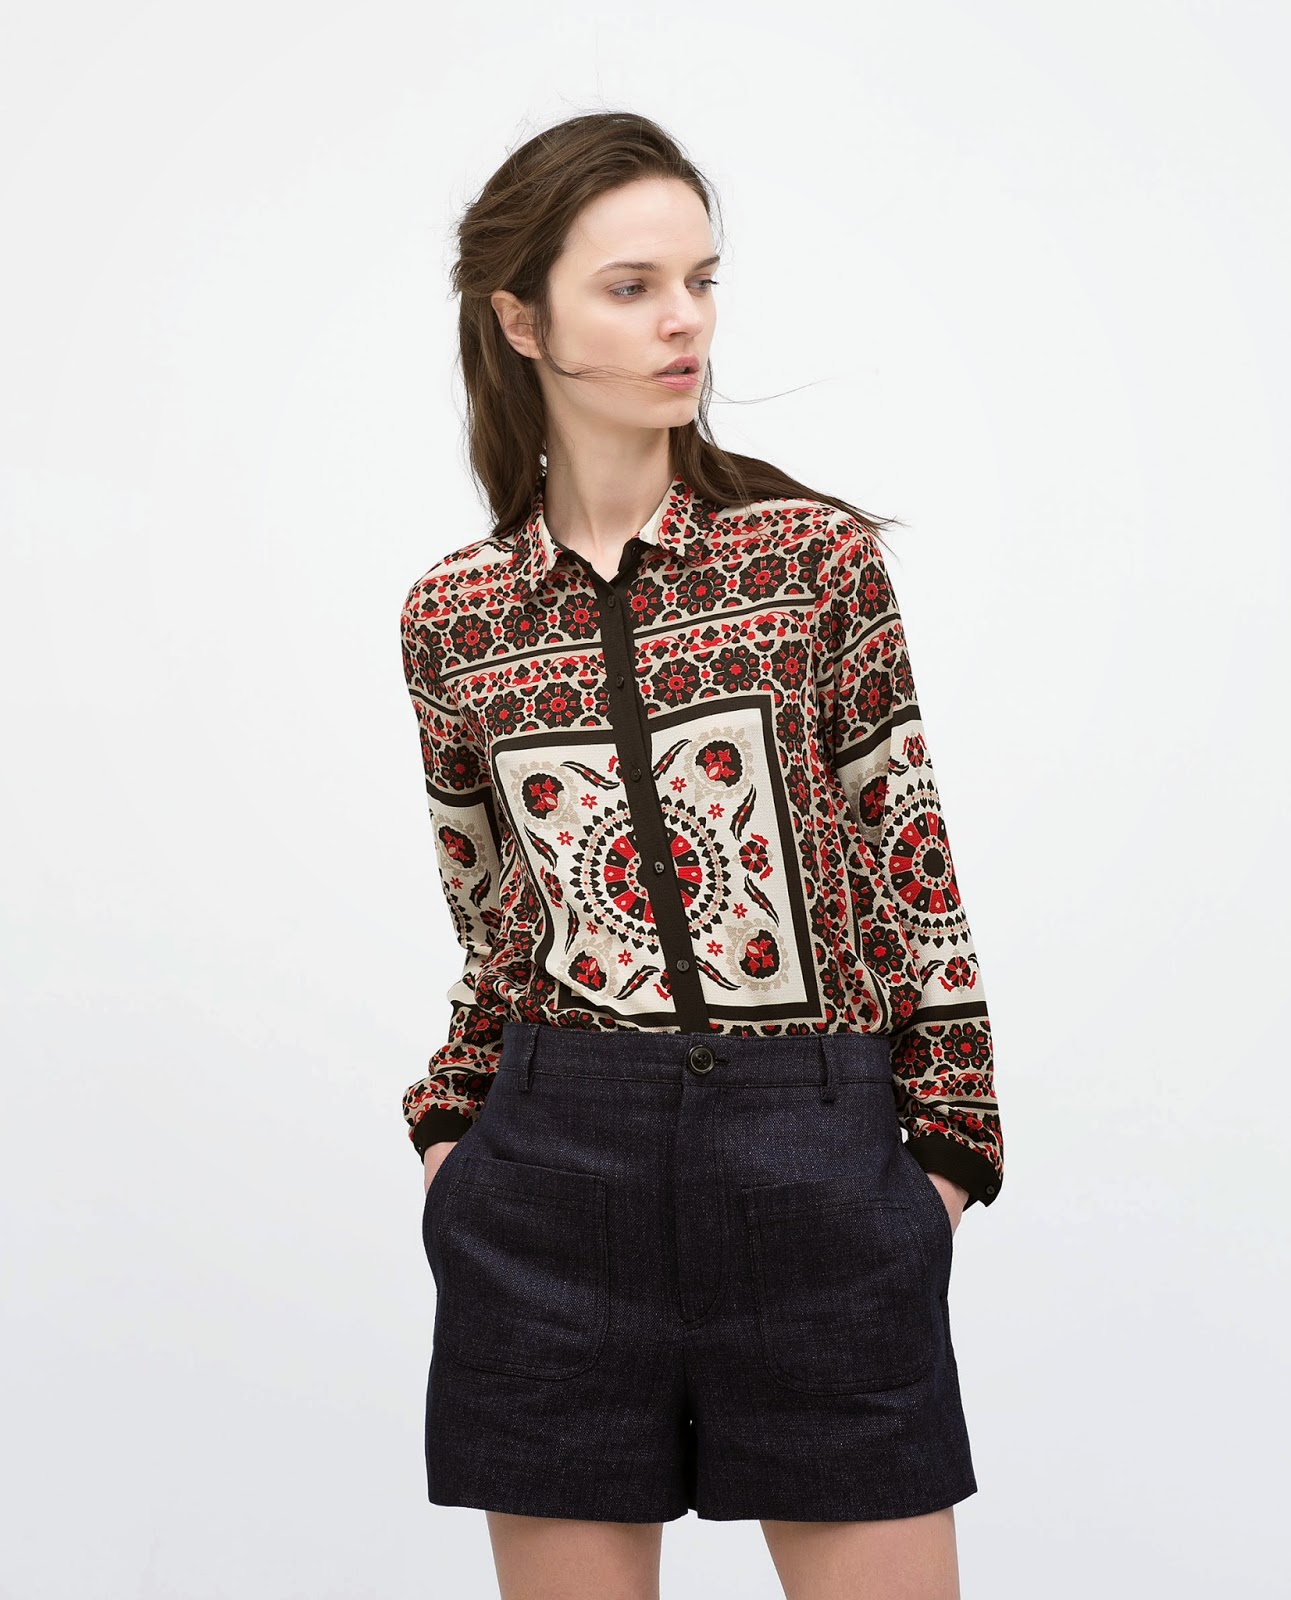 zara patterned blouse,